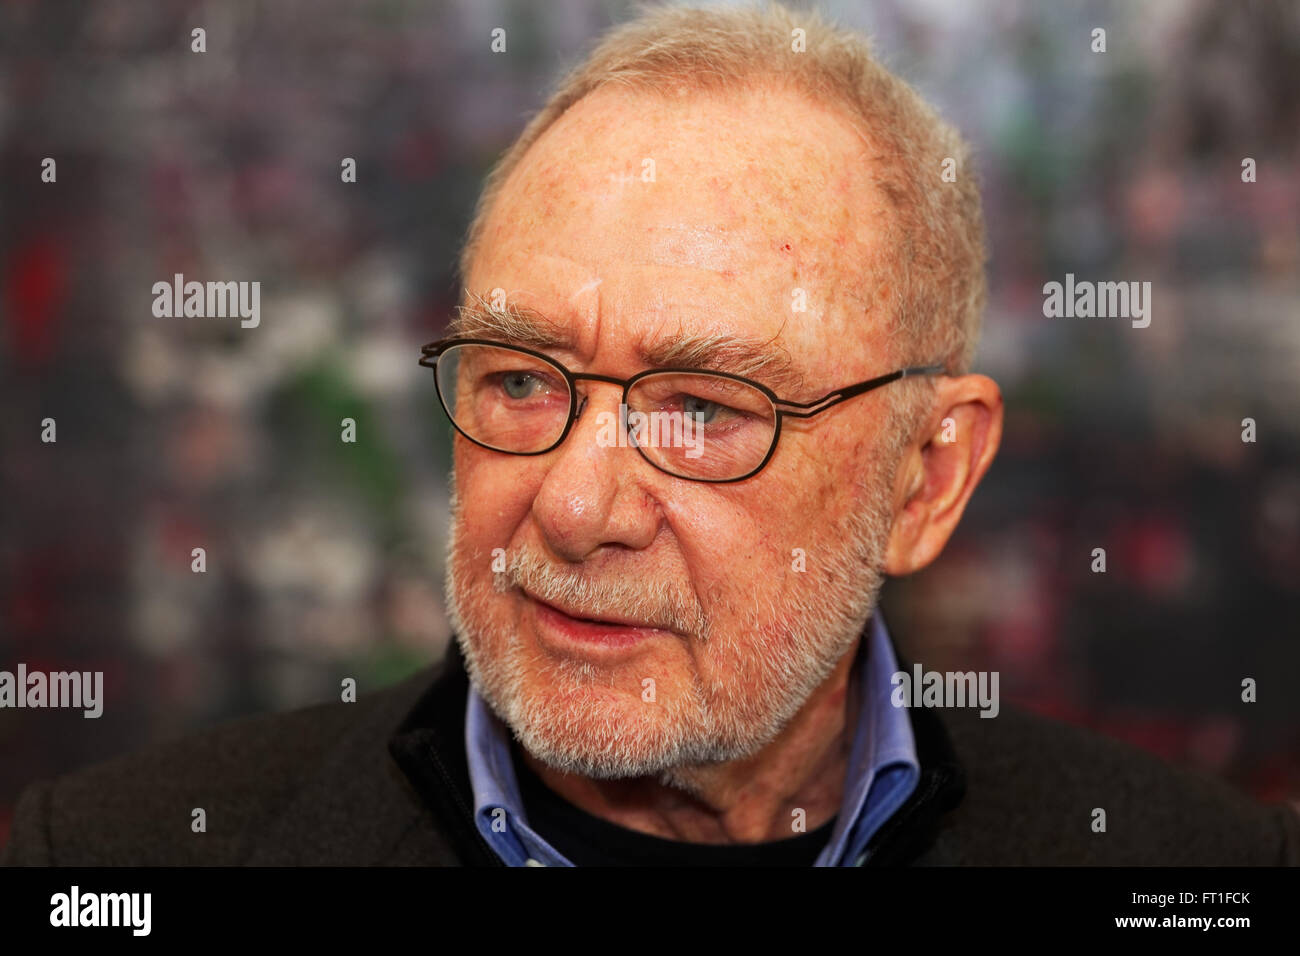 Baden-Baden, Germany. 5th February, 2016. Gerhard Richter press conference to his new exhibition 'Birkenau' - Stock Image